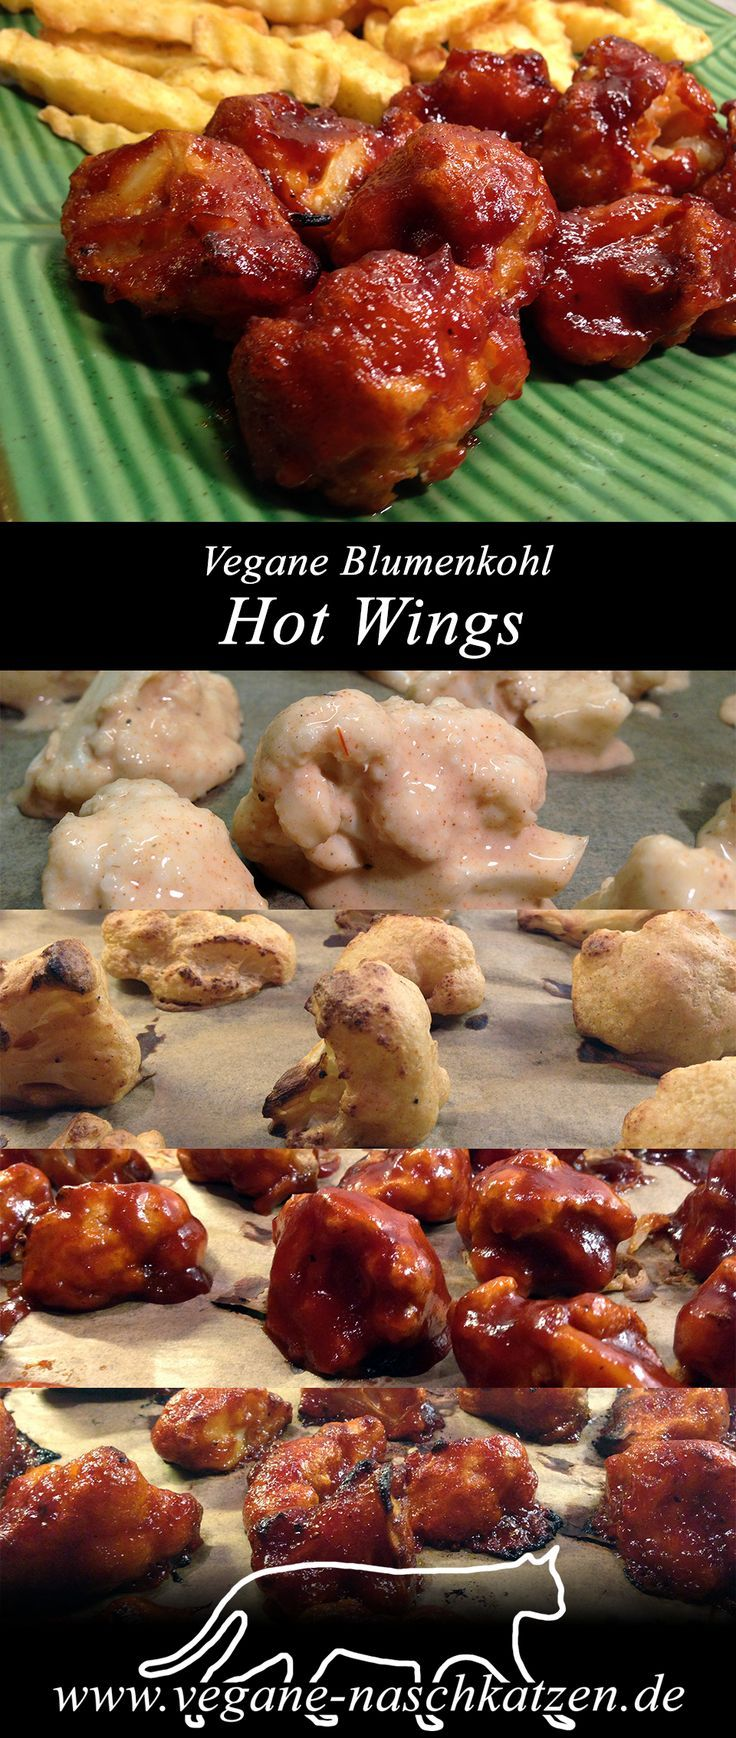 Vegane Hot Wings aus Blumenkohl mit selbstgemachter Hot Barbecue Sauce -